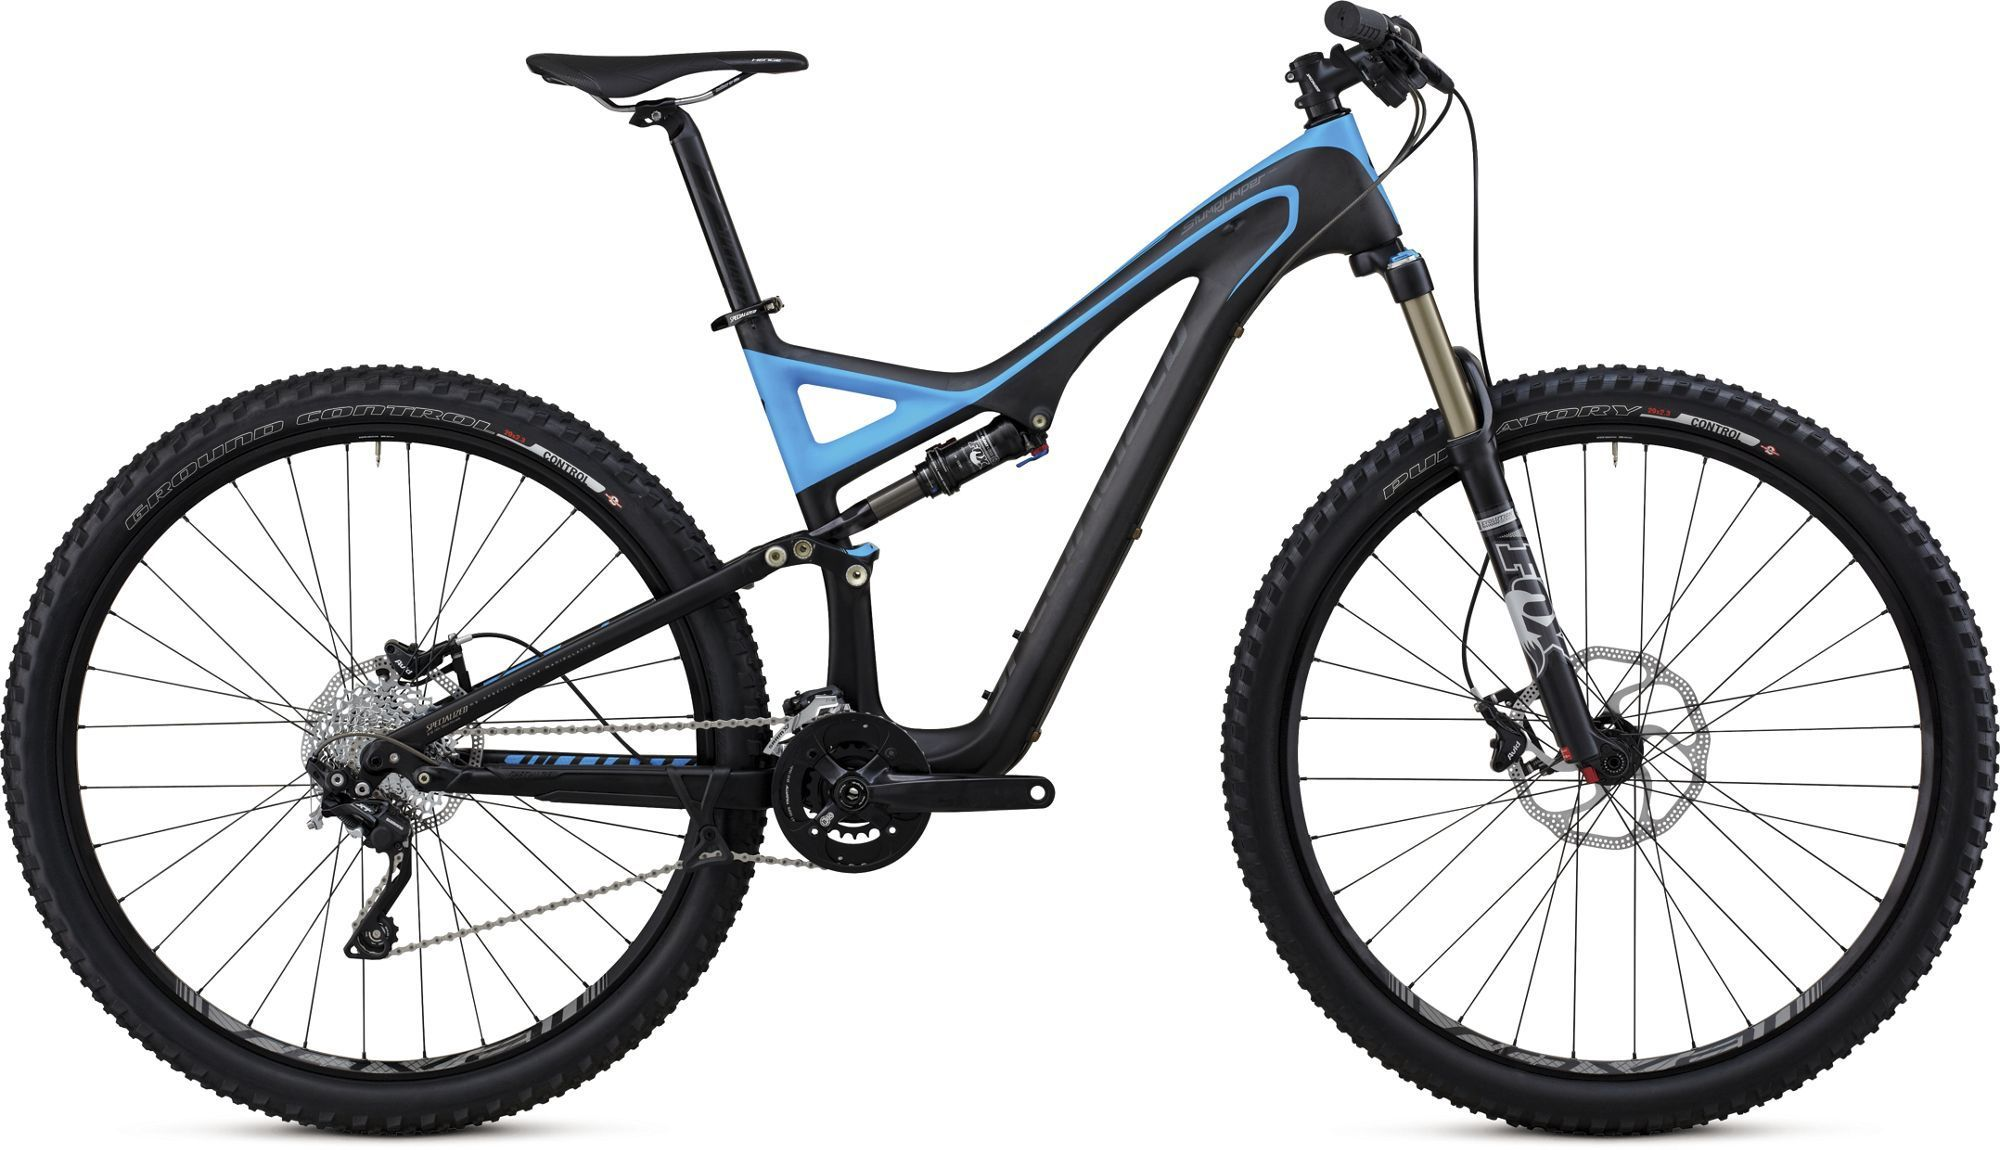 Specialized Stumpjumper FSR Comp Carbon 2013 review - The Bike List